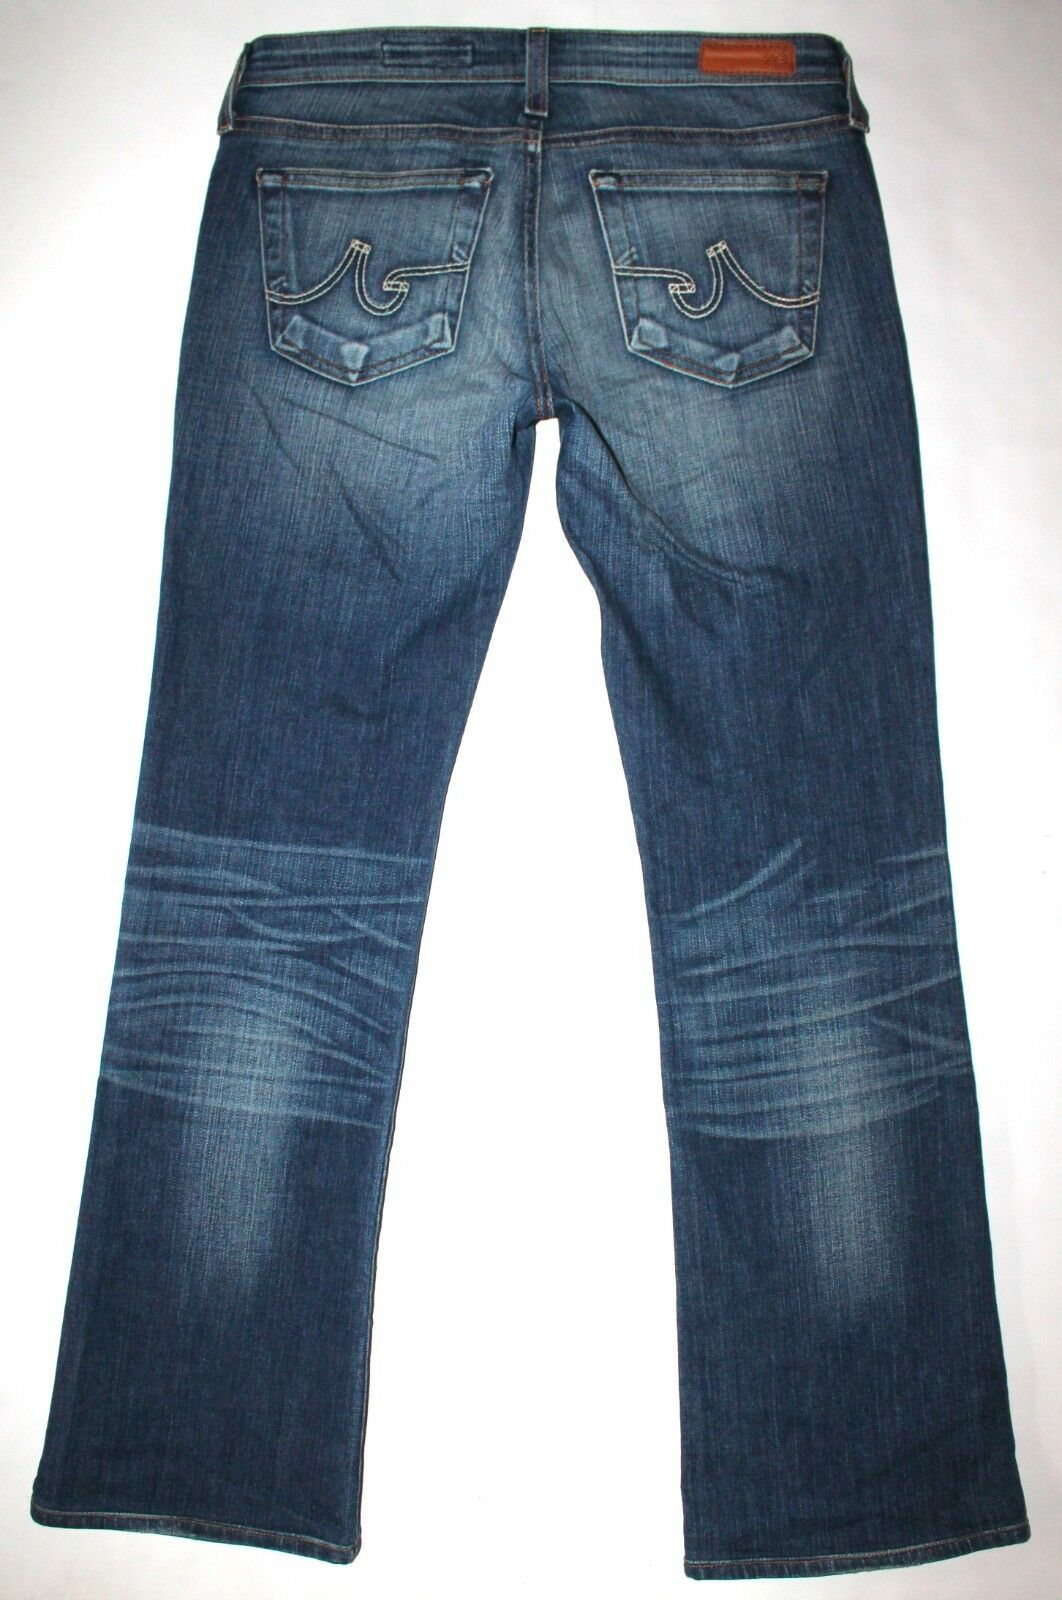 AG Adriano goldschmied Women's The Angel Boot Cut Jeans Size 27R X 28 1 4 CUTE